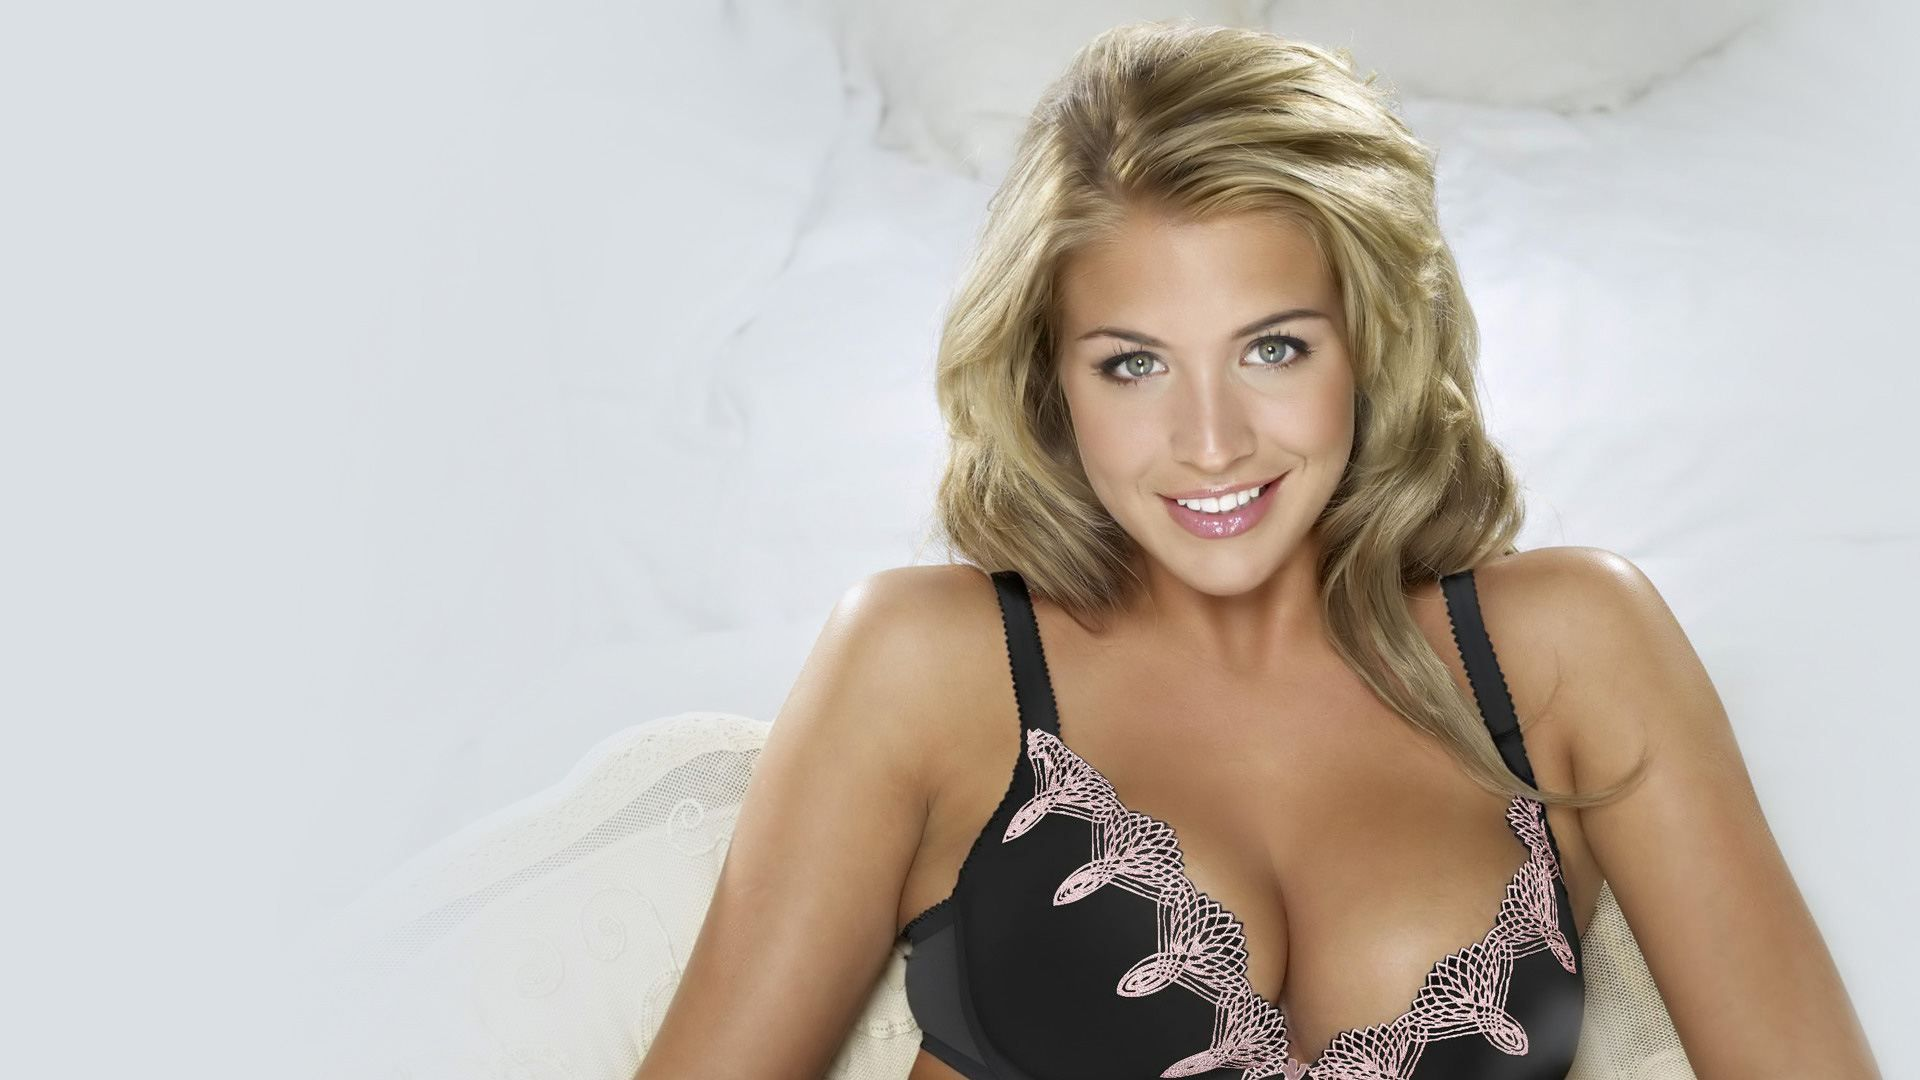 Cute Love Hd Wallpapers For Mobile Phones Gemma Atkinson Jpg 1920 215 1080 Gemma Atkinson